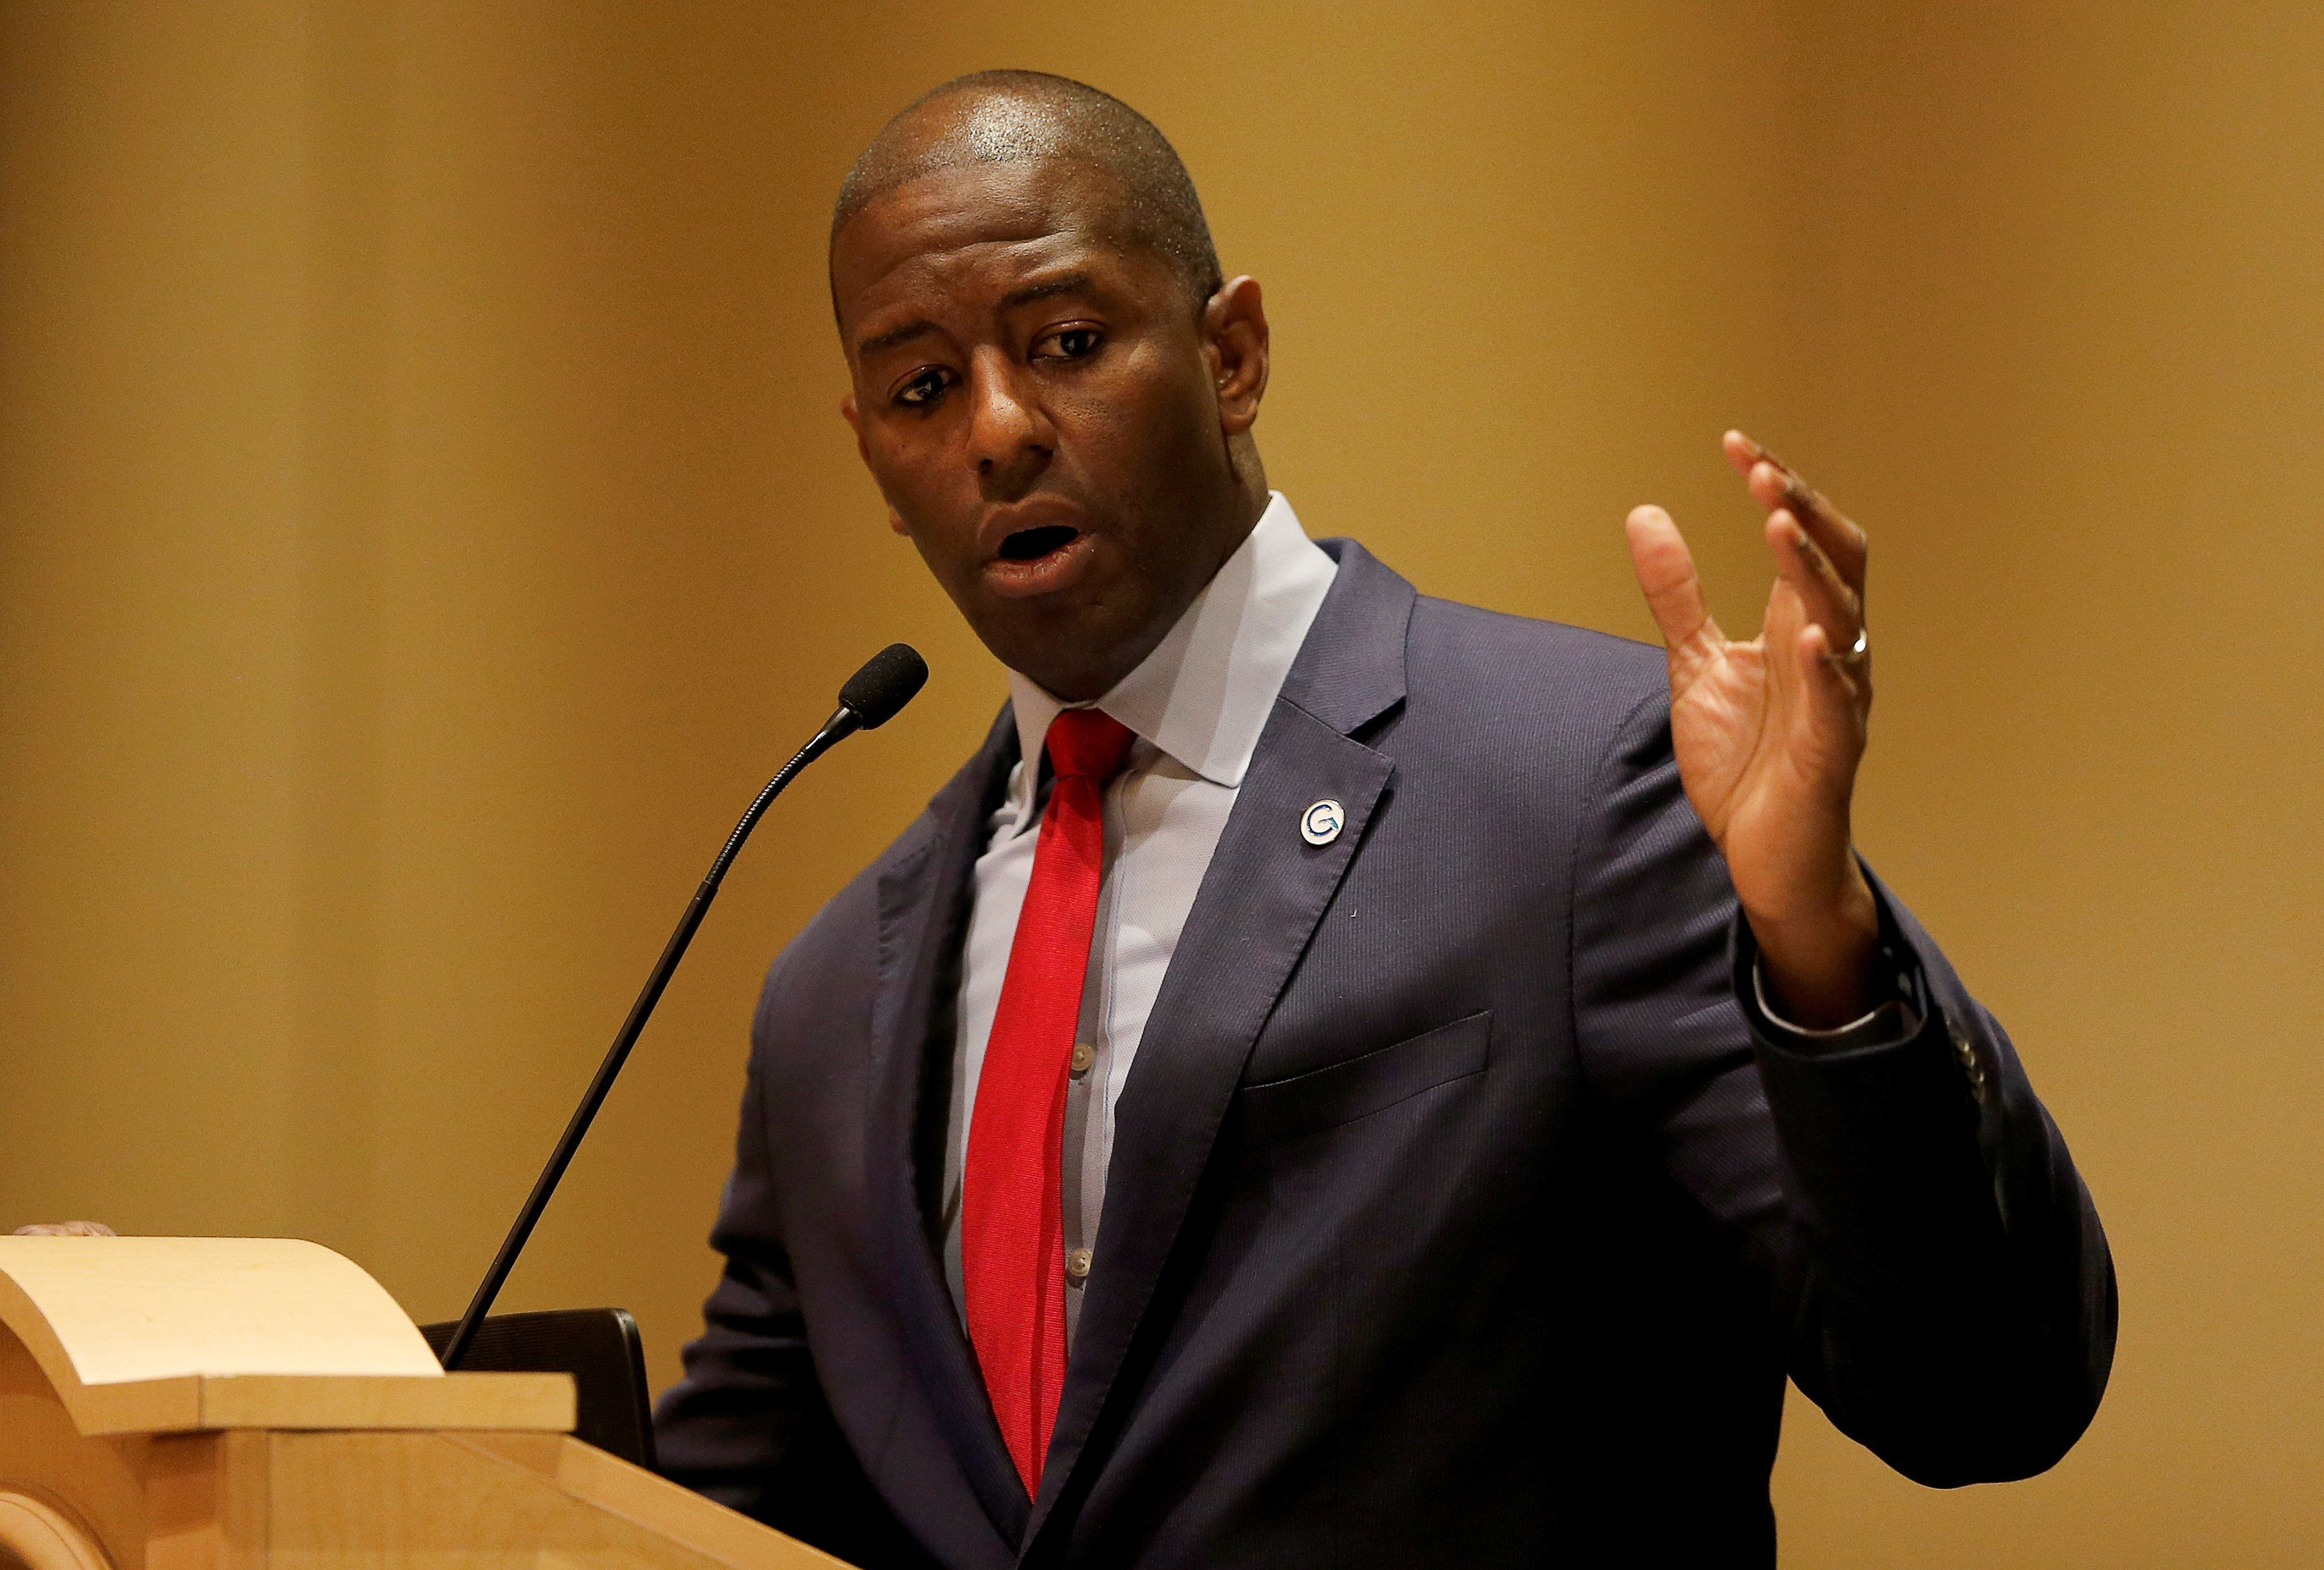 Democratic candidate Andrew Gillum speaks at a Florida League of Cities Gubernatorial Candidates Forum in Hollywood, Florida, U.S. August 15, 2018.  REUTERS/Joe Skipper